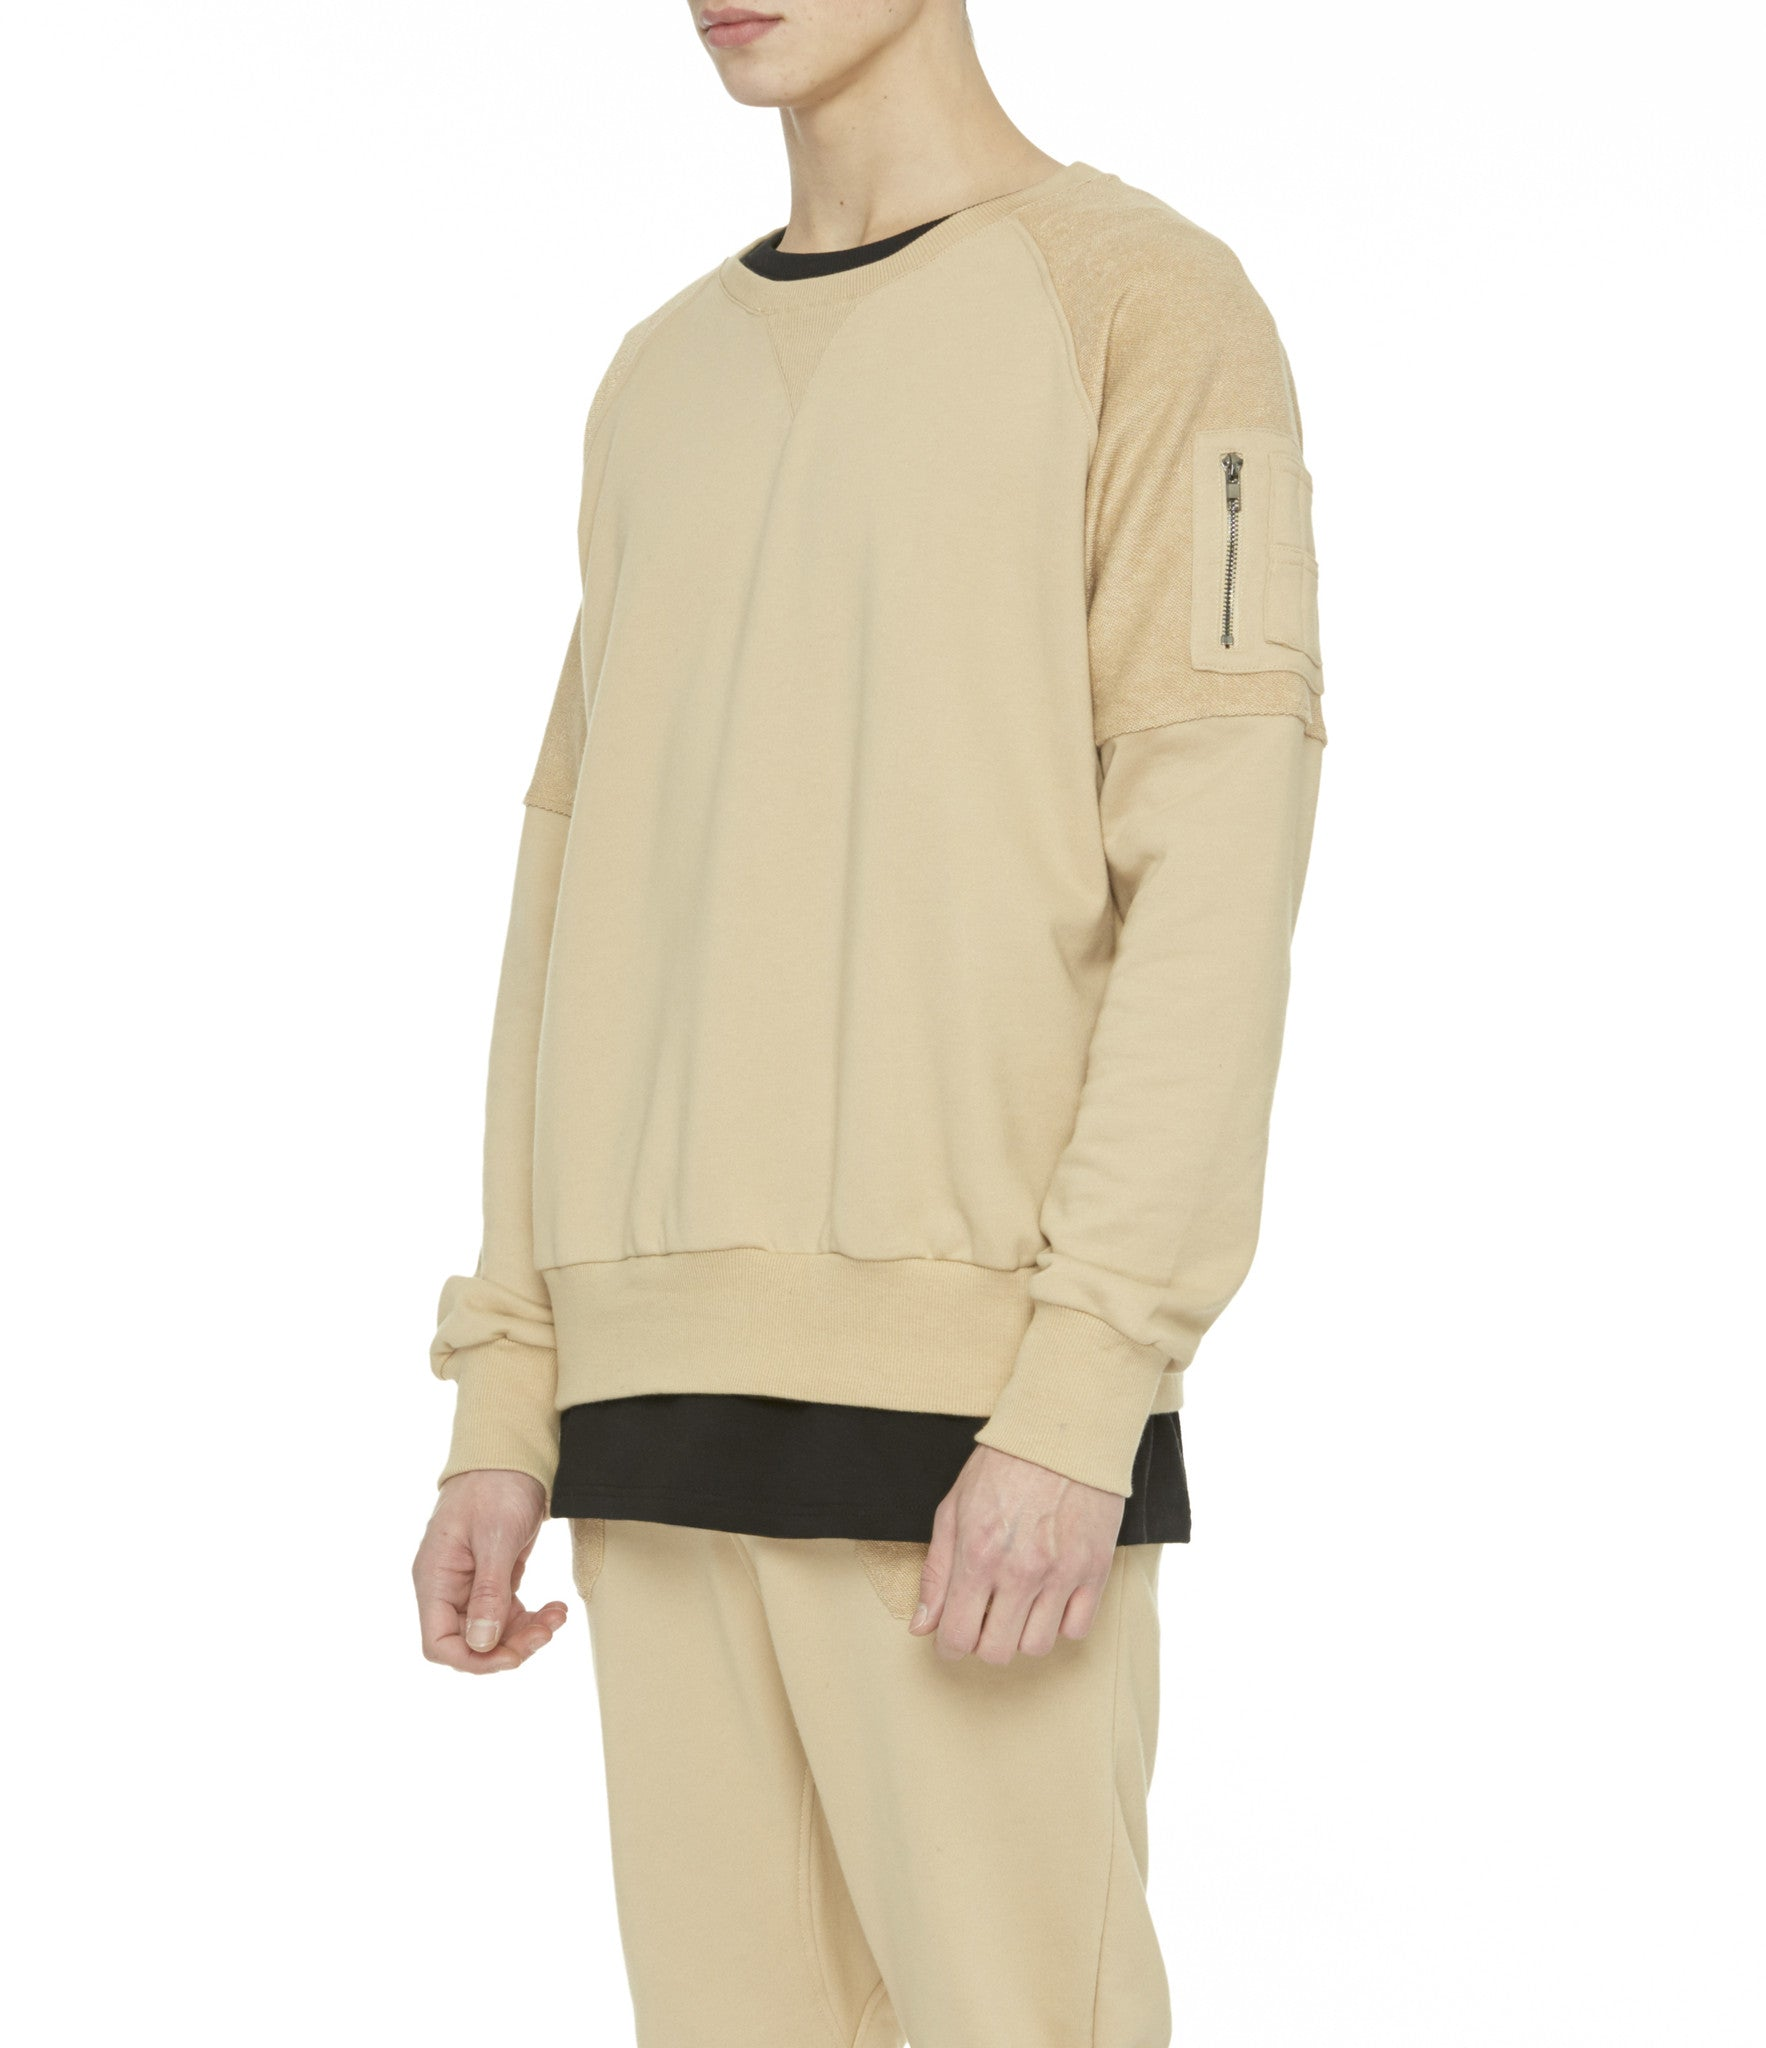 SW229 Oversized Utility Sweatshirt - Beige - underated london - underatedco - 5